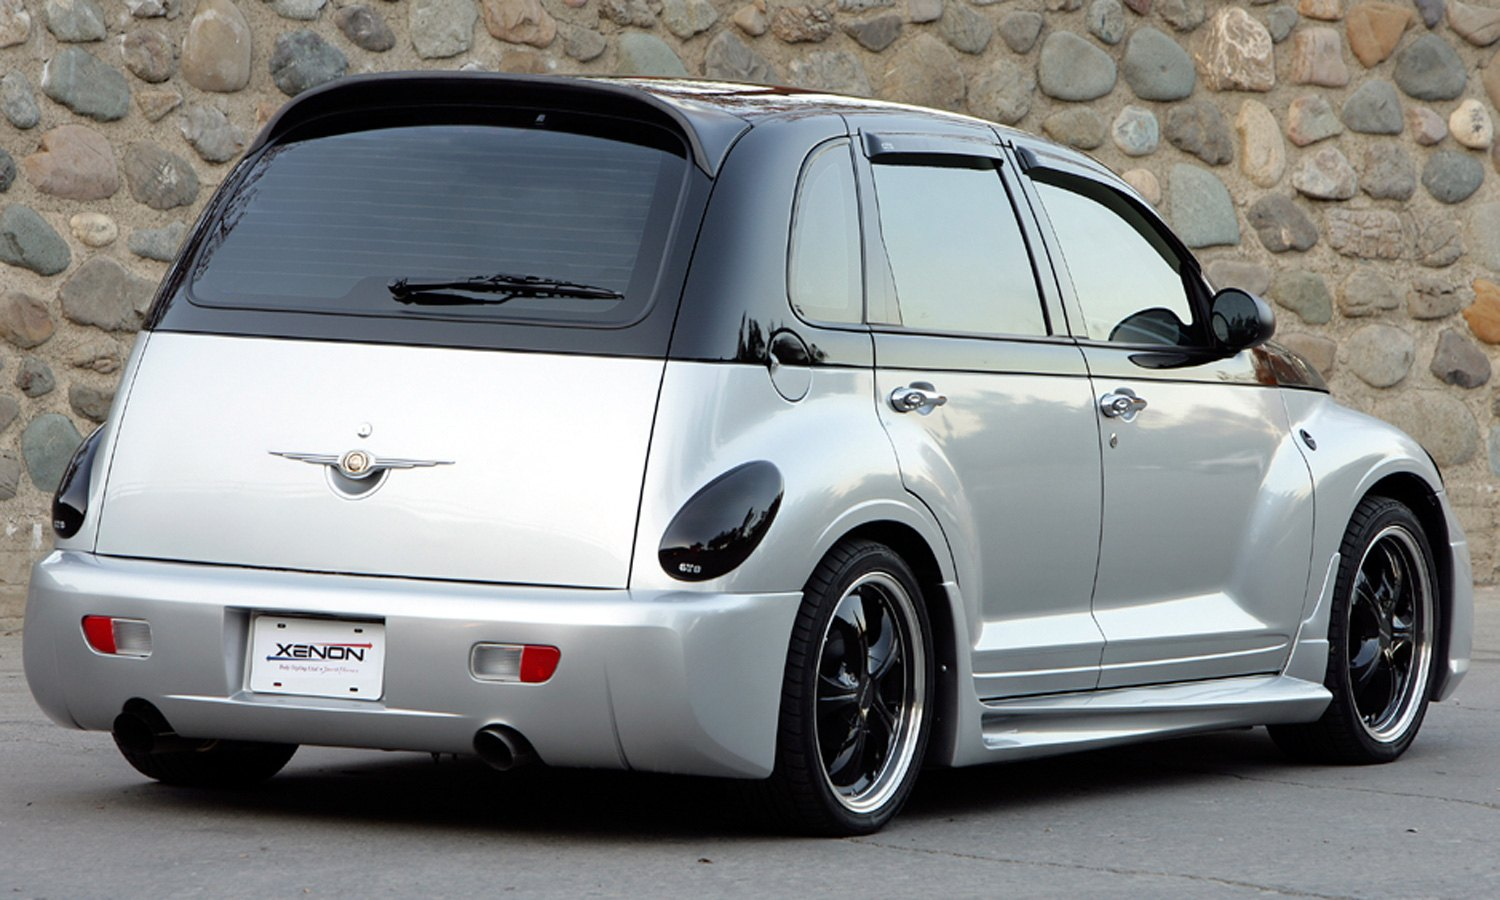 hight resolution of xenon body kit chrysler pt cruiser